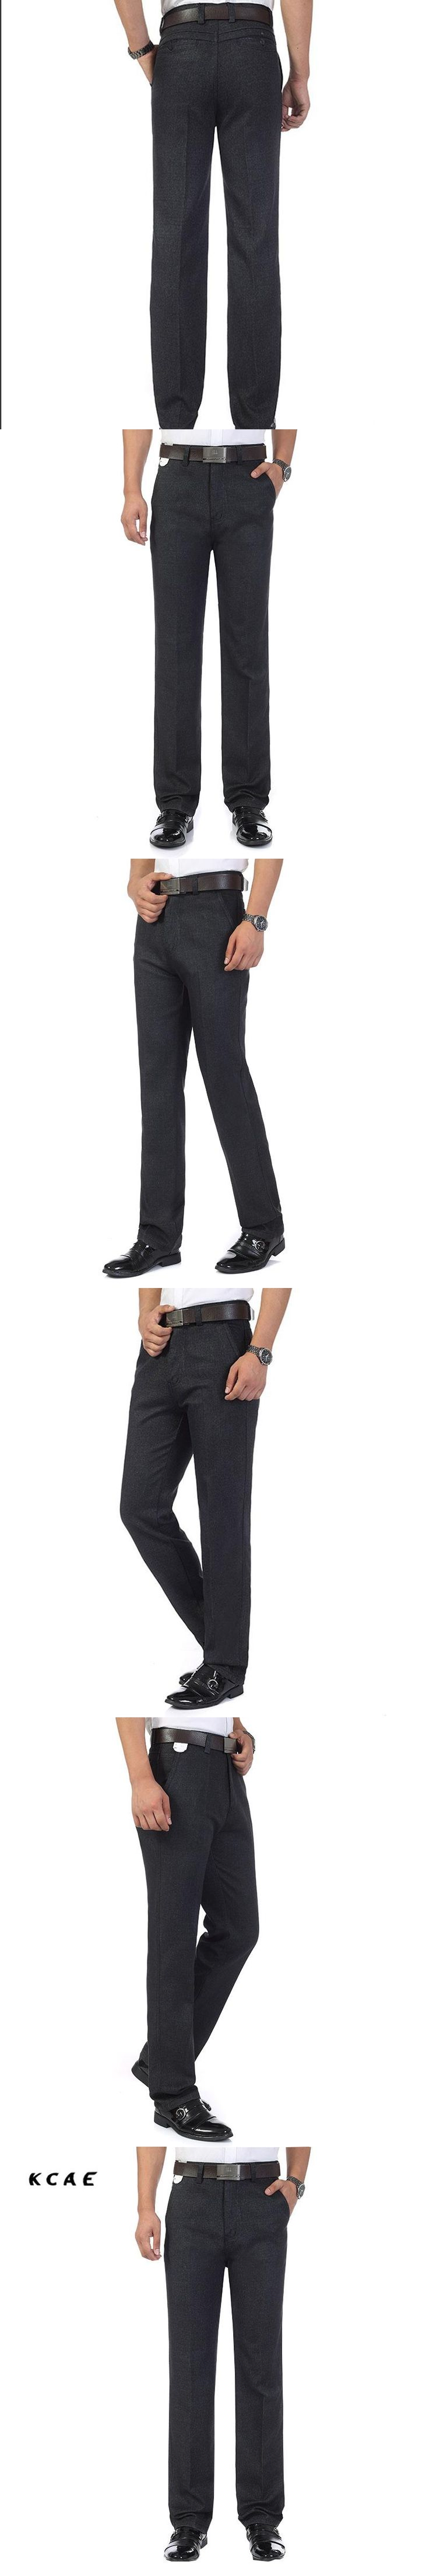 2017 autumn and winter new men's self-cultivation slacks men's business dress straight in the waist long pants Size 35 36 38 40